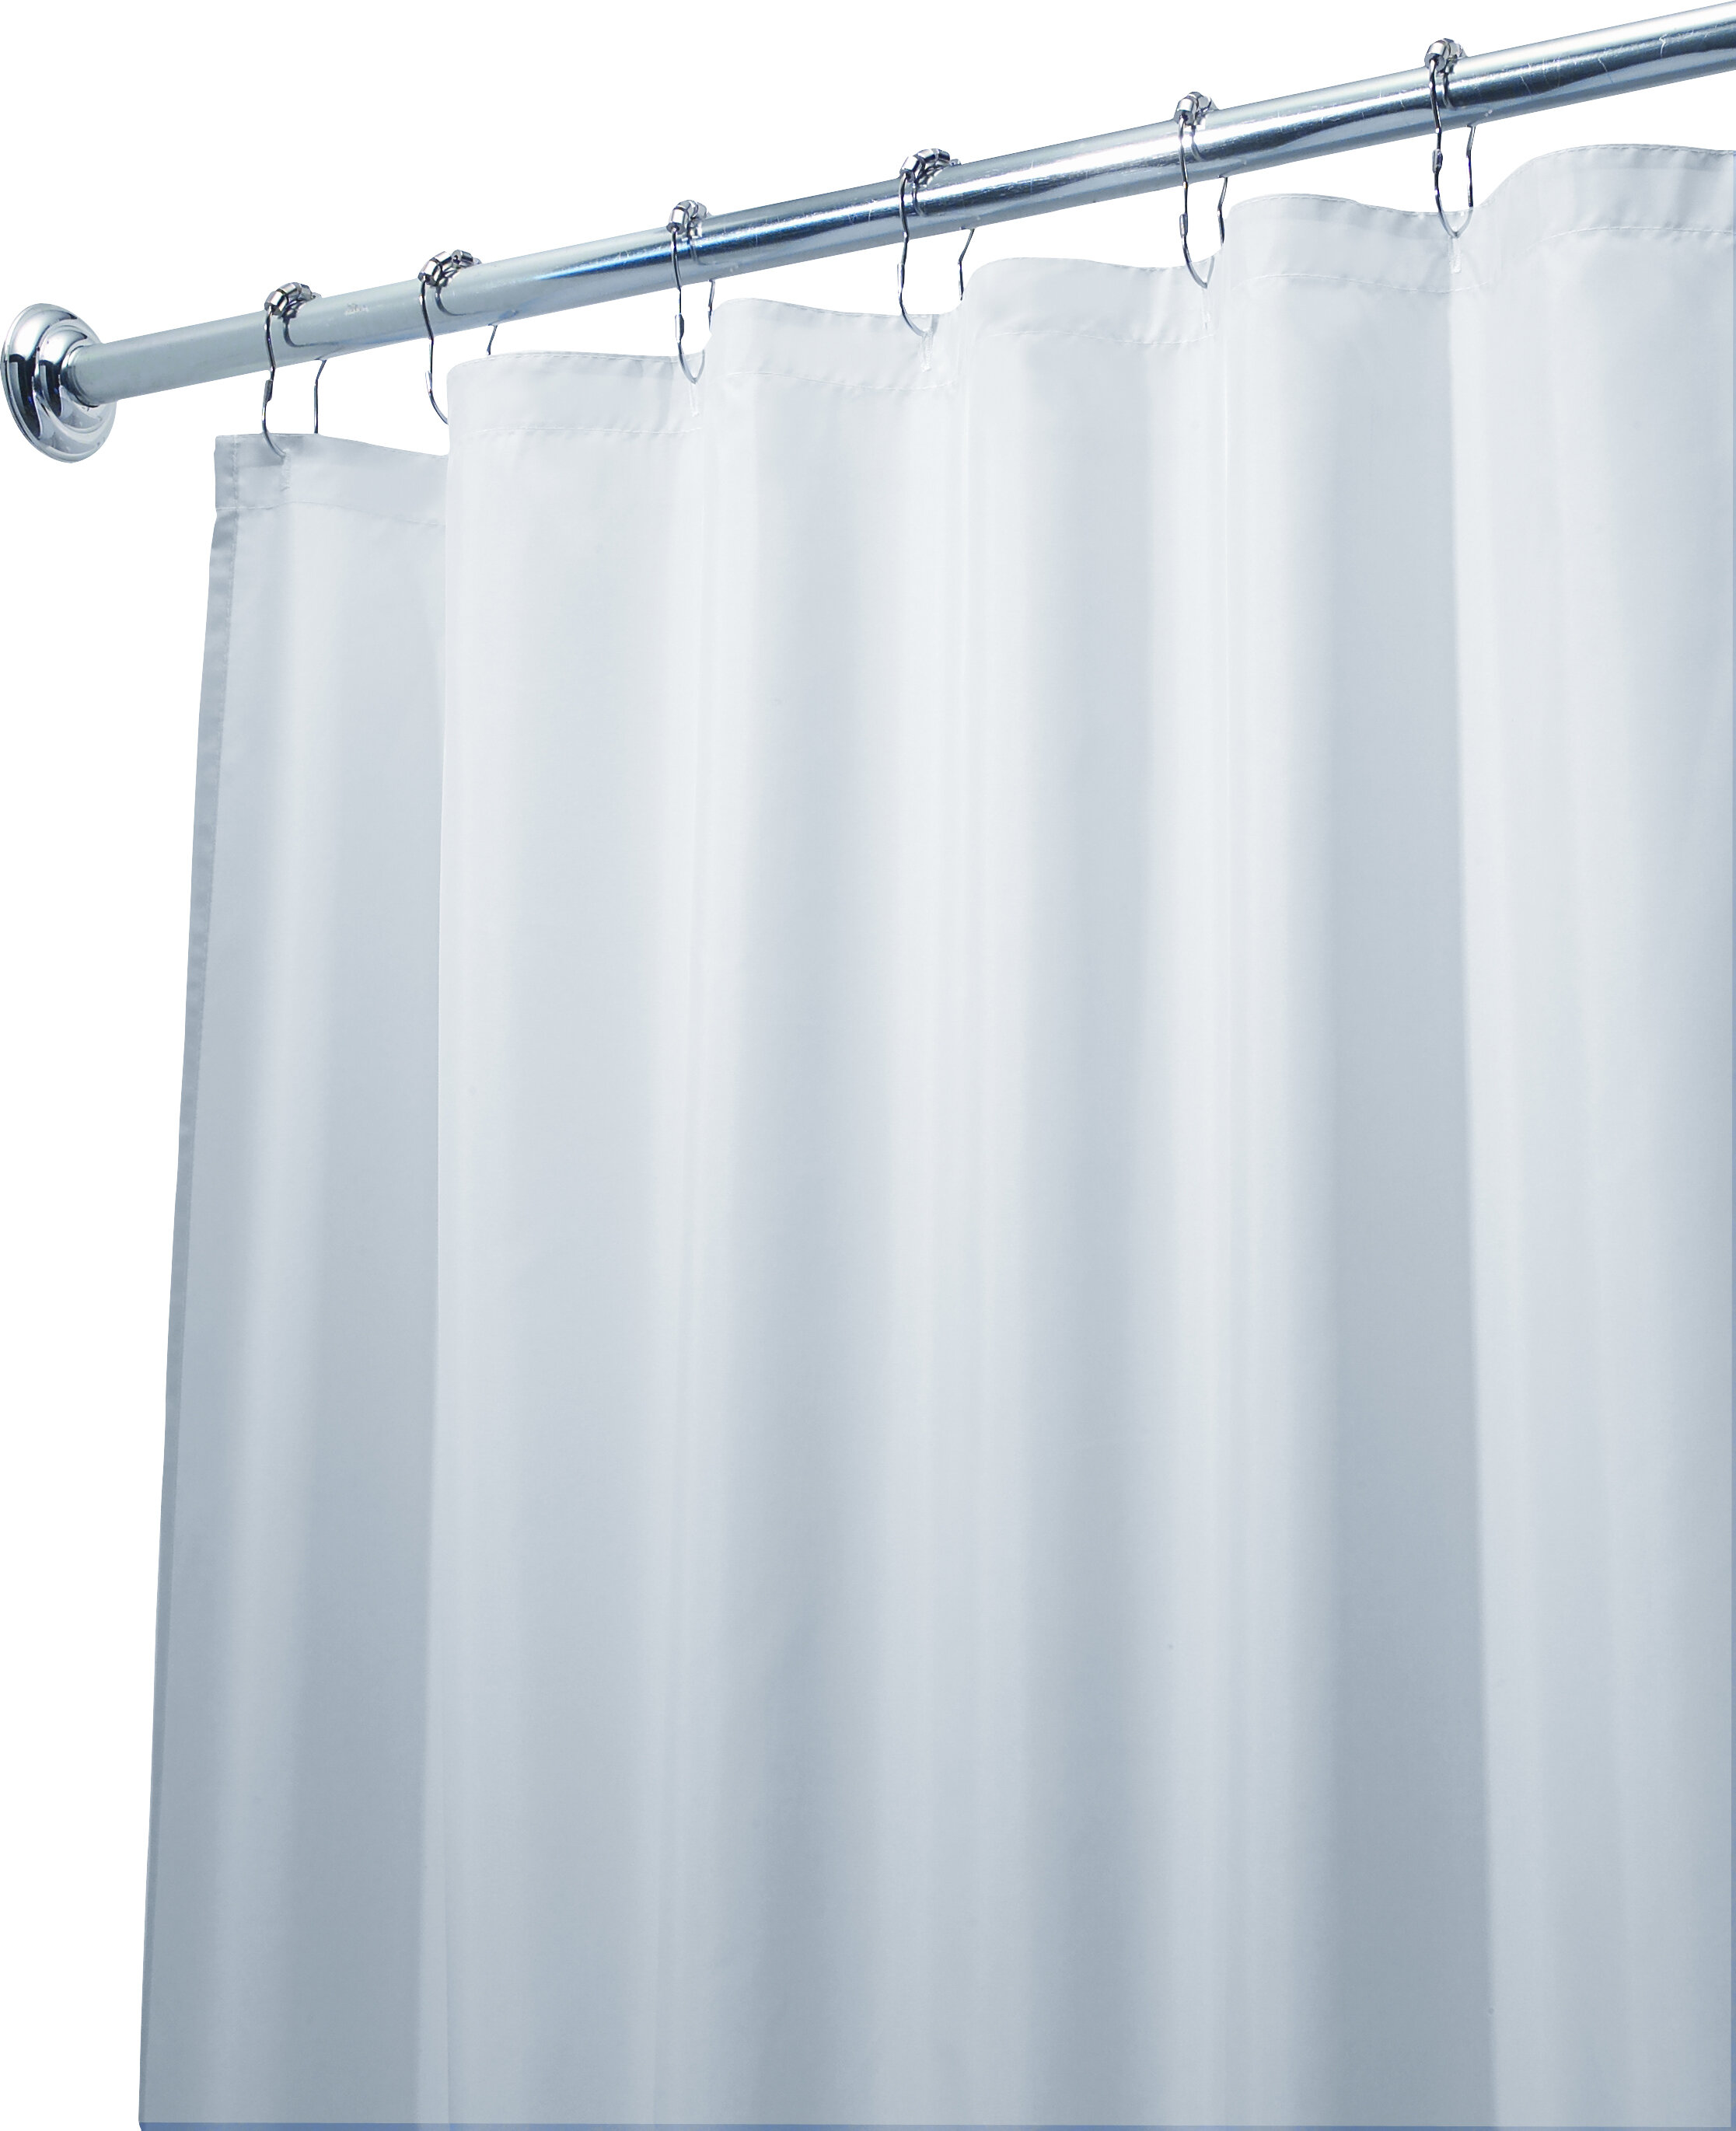 Symple Stuff Waterproof Stall Shower Curtain Reviews